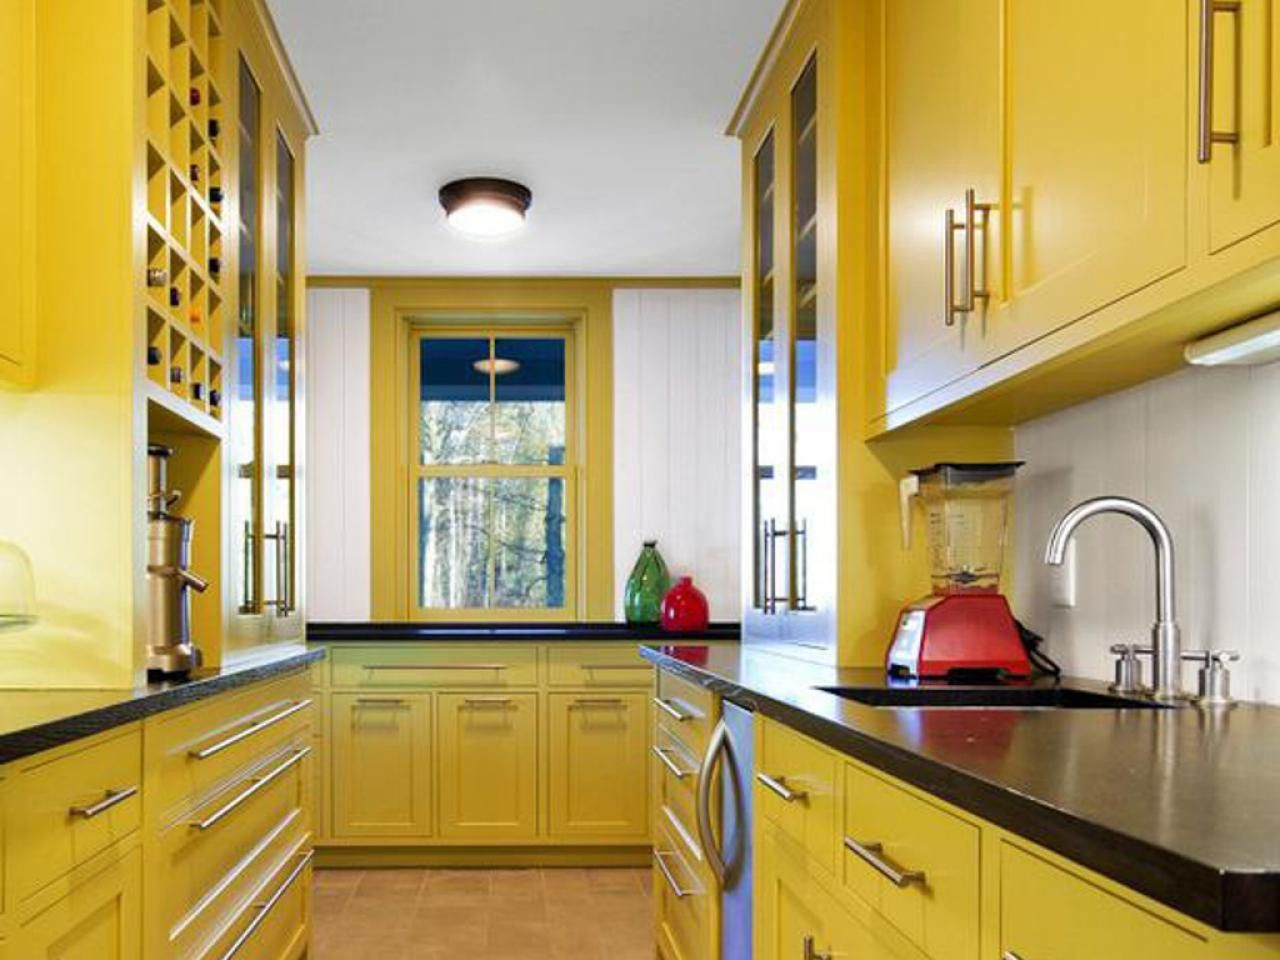 Spannend Gelb Küchenschränke Grau Und Weiß Gelb Küche Antik Weiß Küche Schränke Badezimmer Yellow Kitchen Decor Interior Design Kitchen Kitchen Design Decor